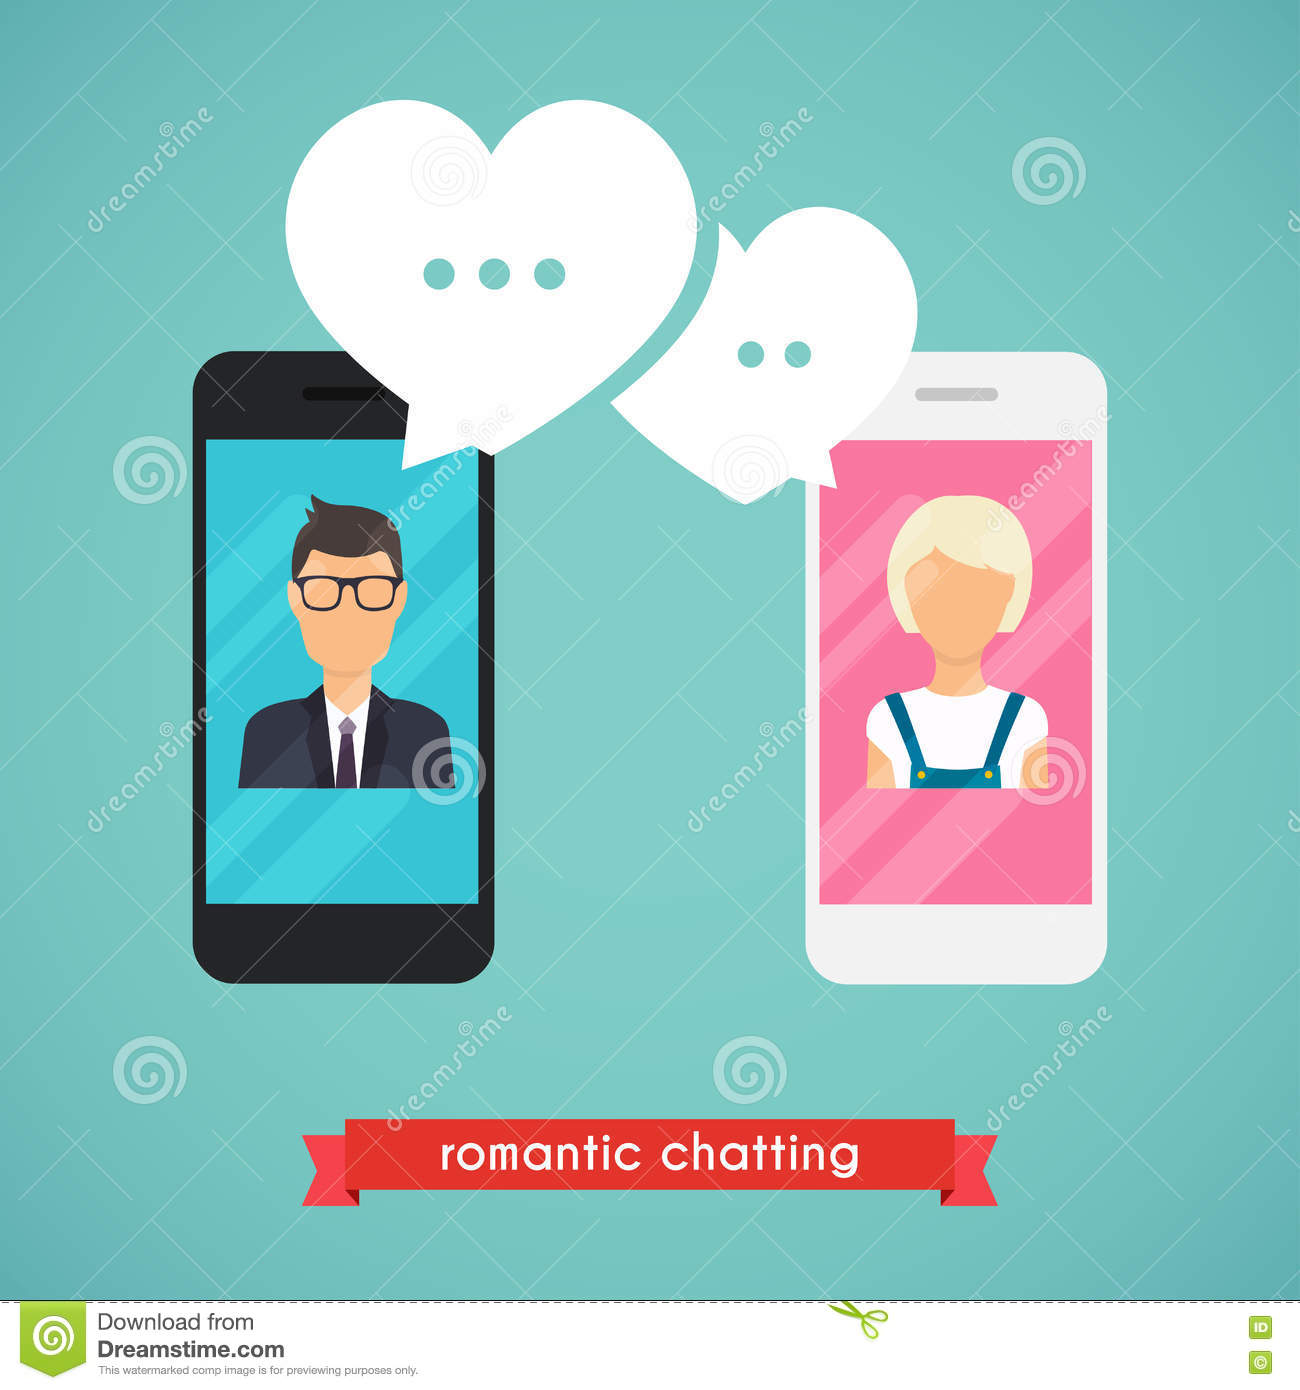 Online dating with chat